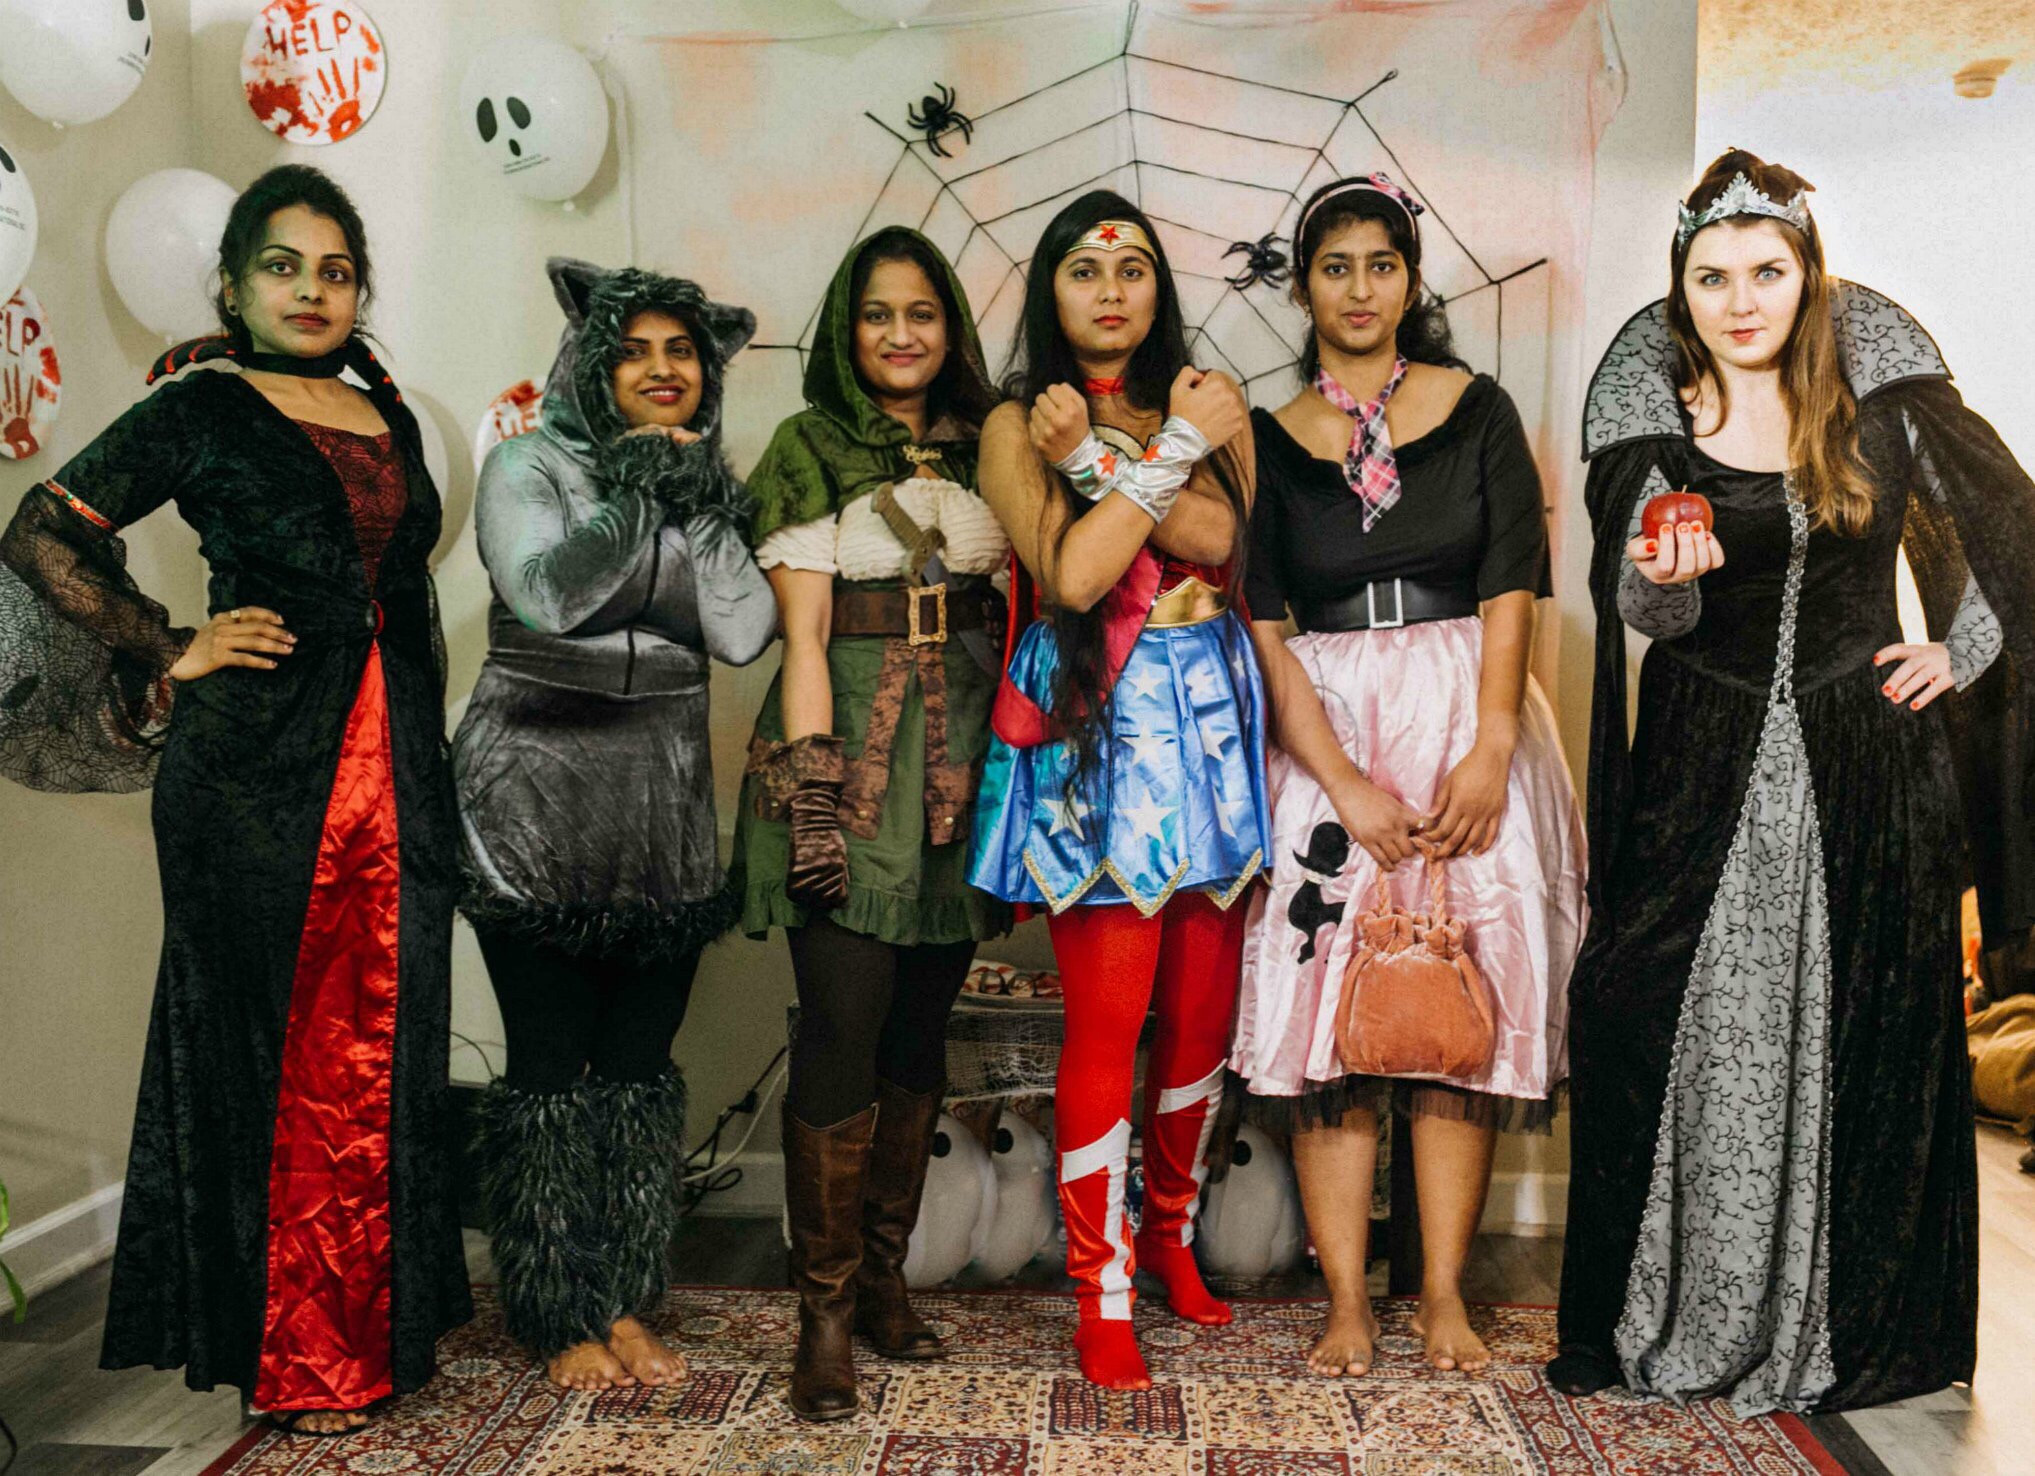 Bachelorette Party Dress Up Ideas  Top 5 Scary Fun Halloween Bachelorette Party Ideas